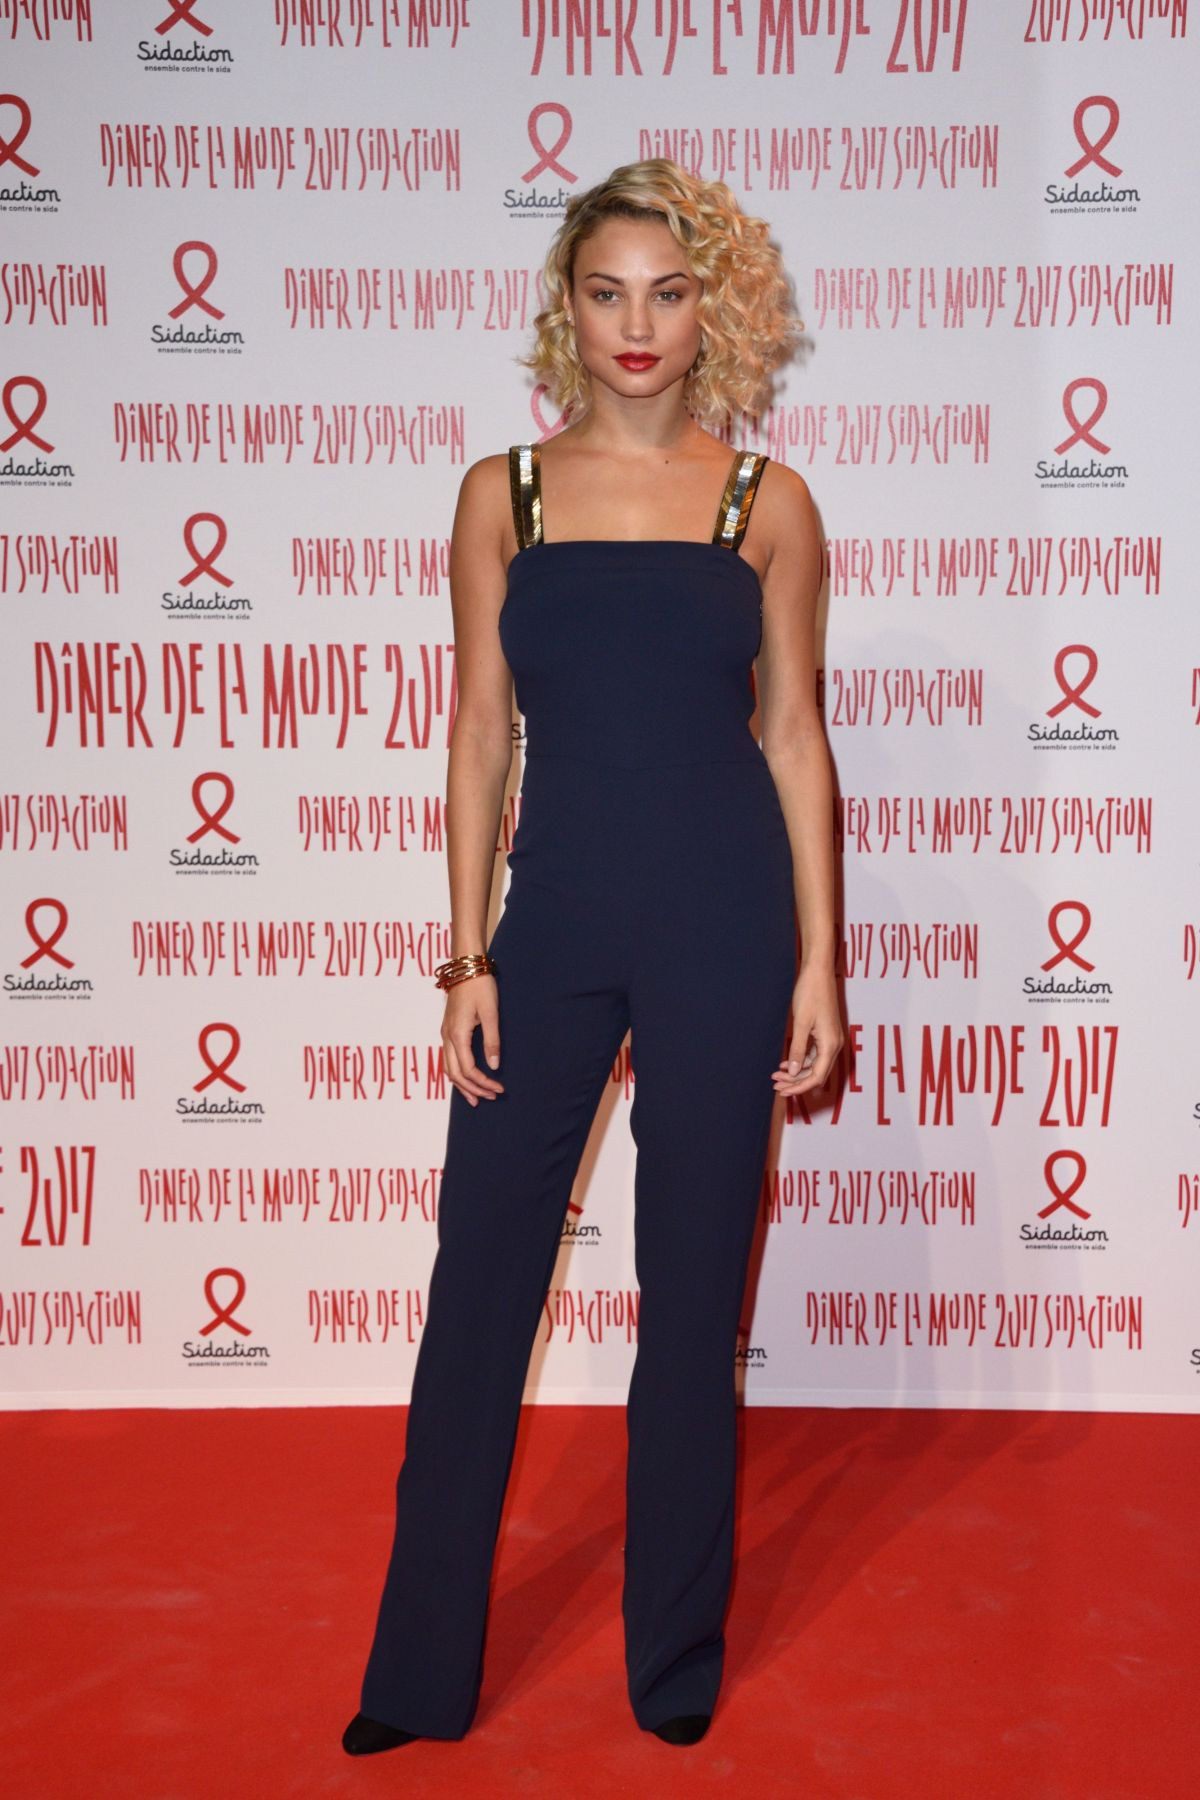 ROSE BERTRAM at Sidaction Gala Dinner 2017 in Paris 01/26/2017